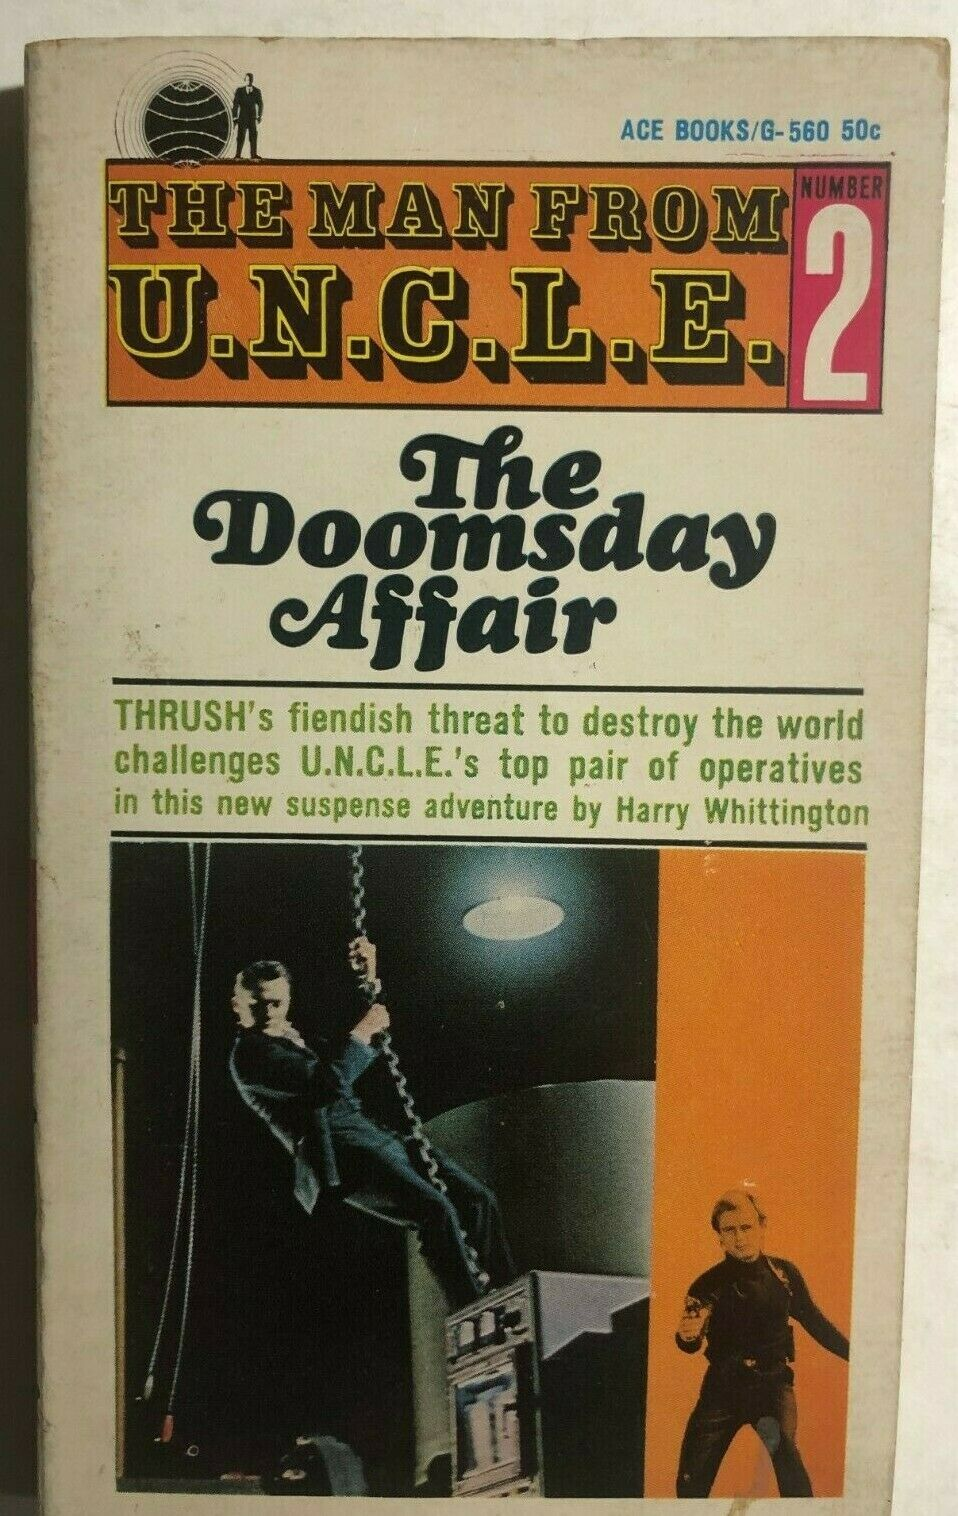 Primary image for THE MAN FROM UNCLE #2 The Doomsday Affair by Harry Whittington (1965) Ace TV pb